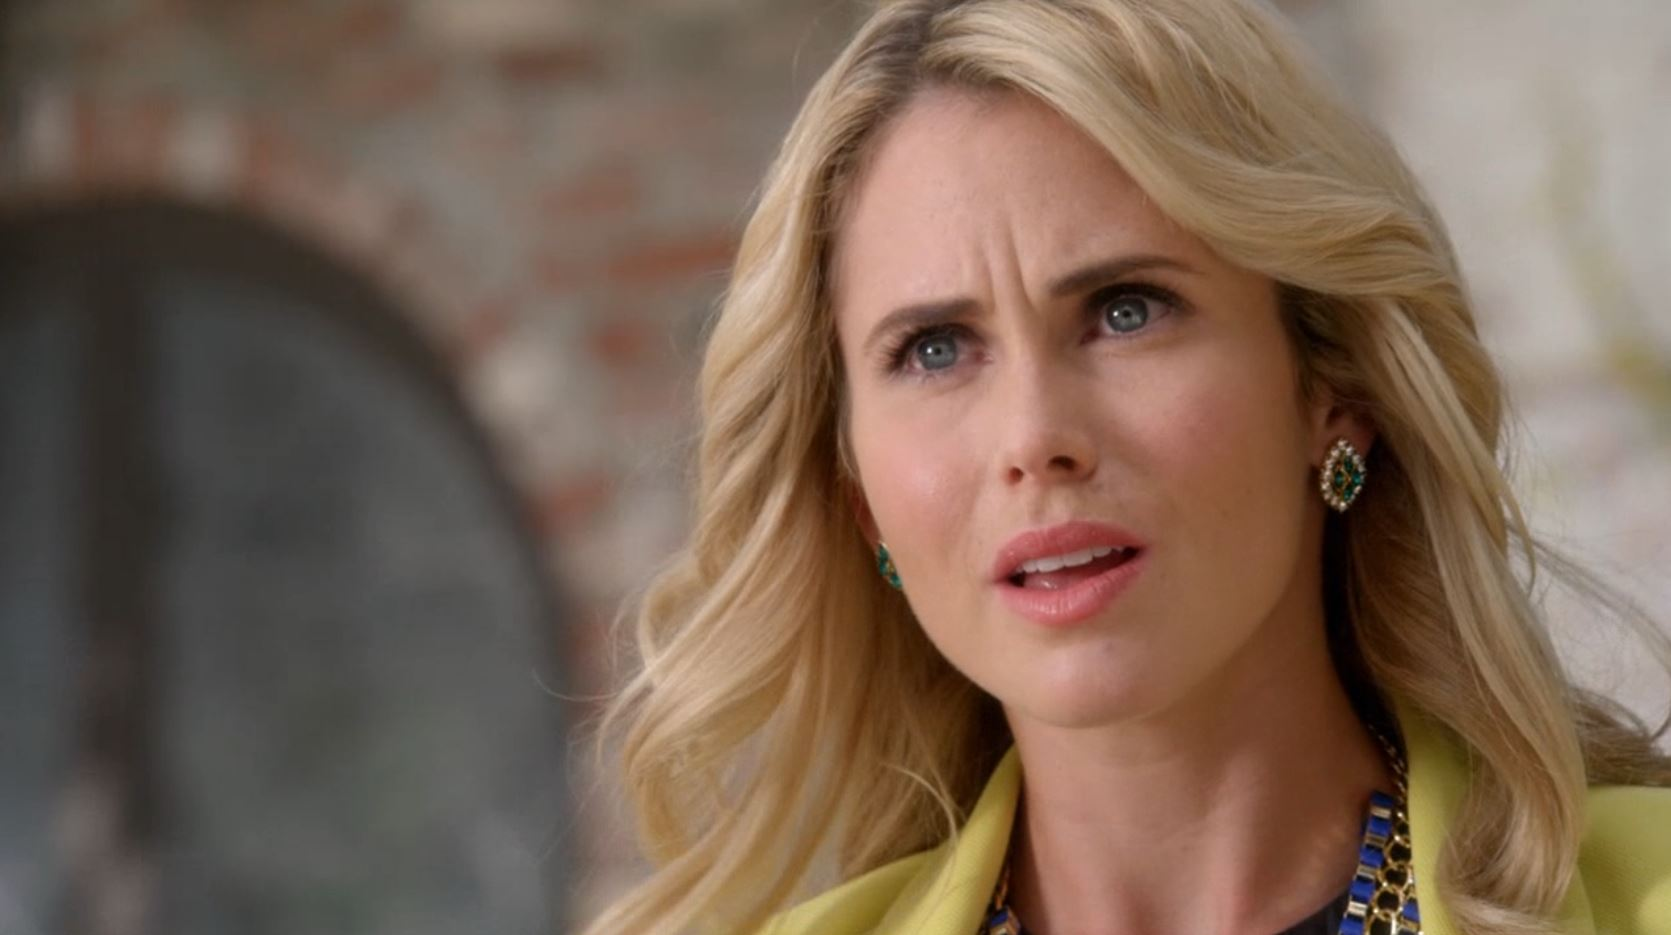 Anna Hutchison in The Right Girl (2015)